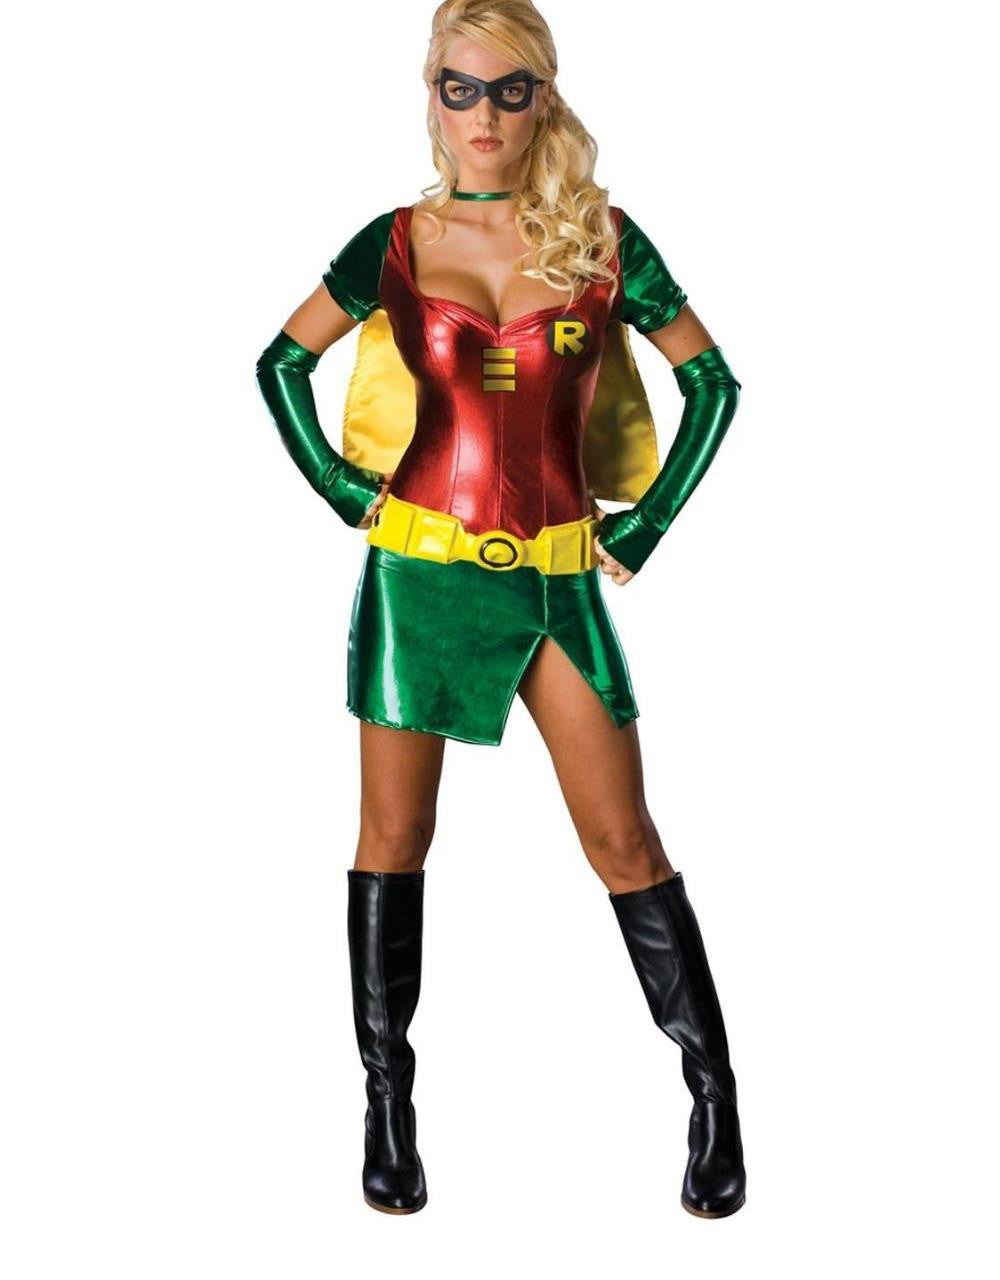 Sexy Vinyl Leather Halloween Batwomen Costume Dress - Sins & Temptations